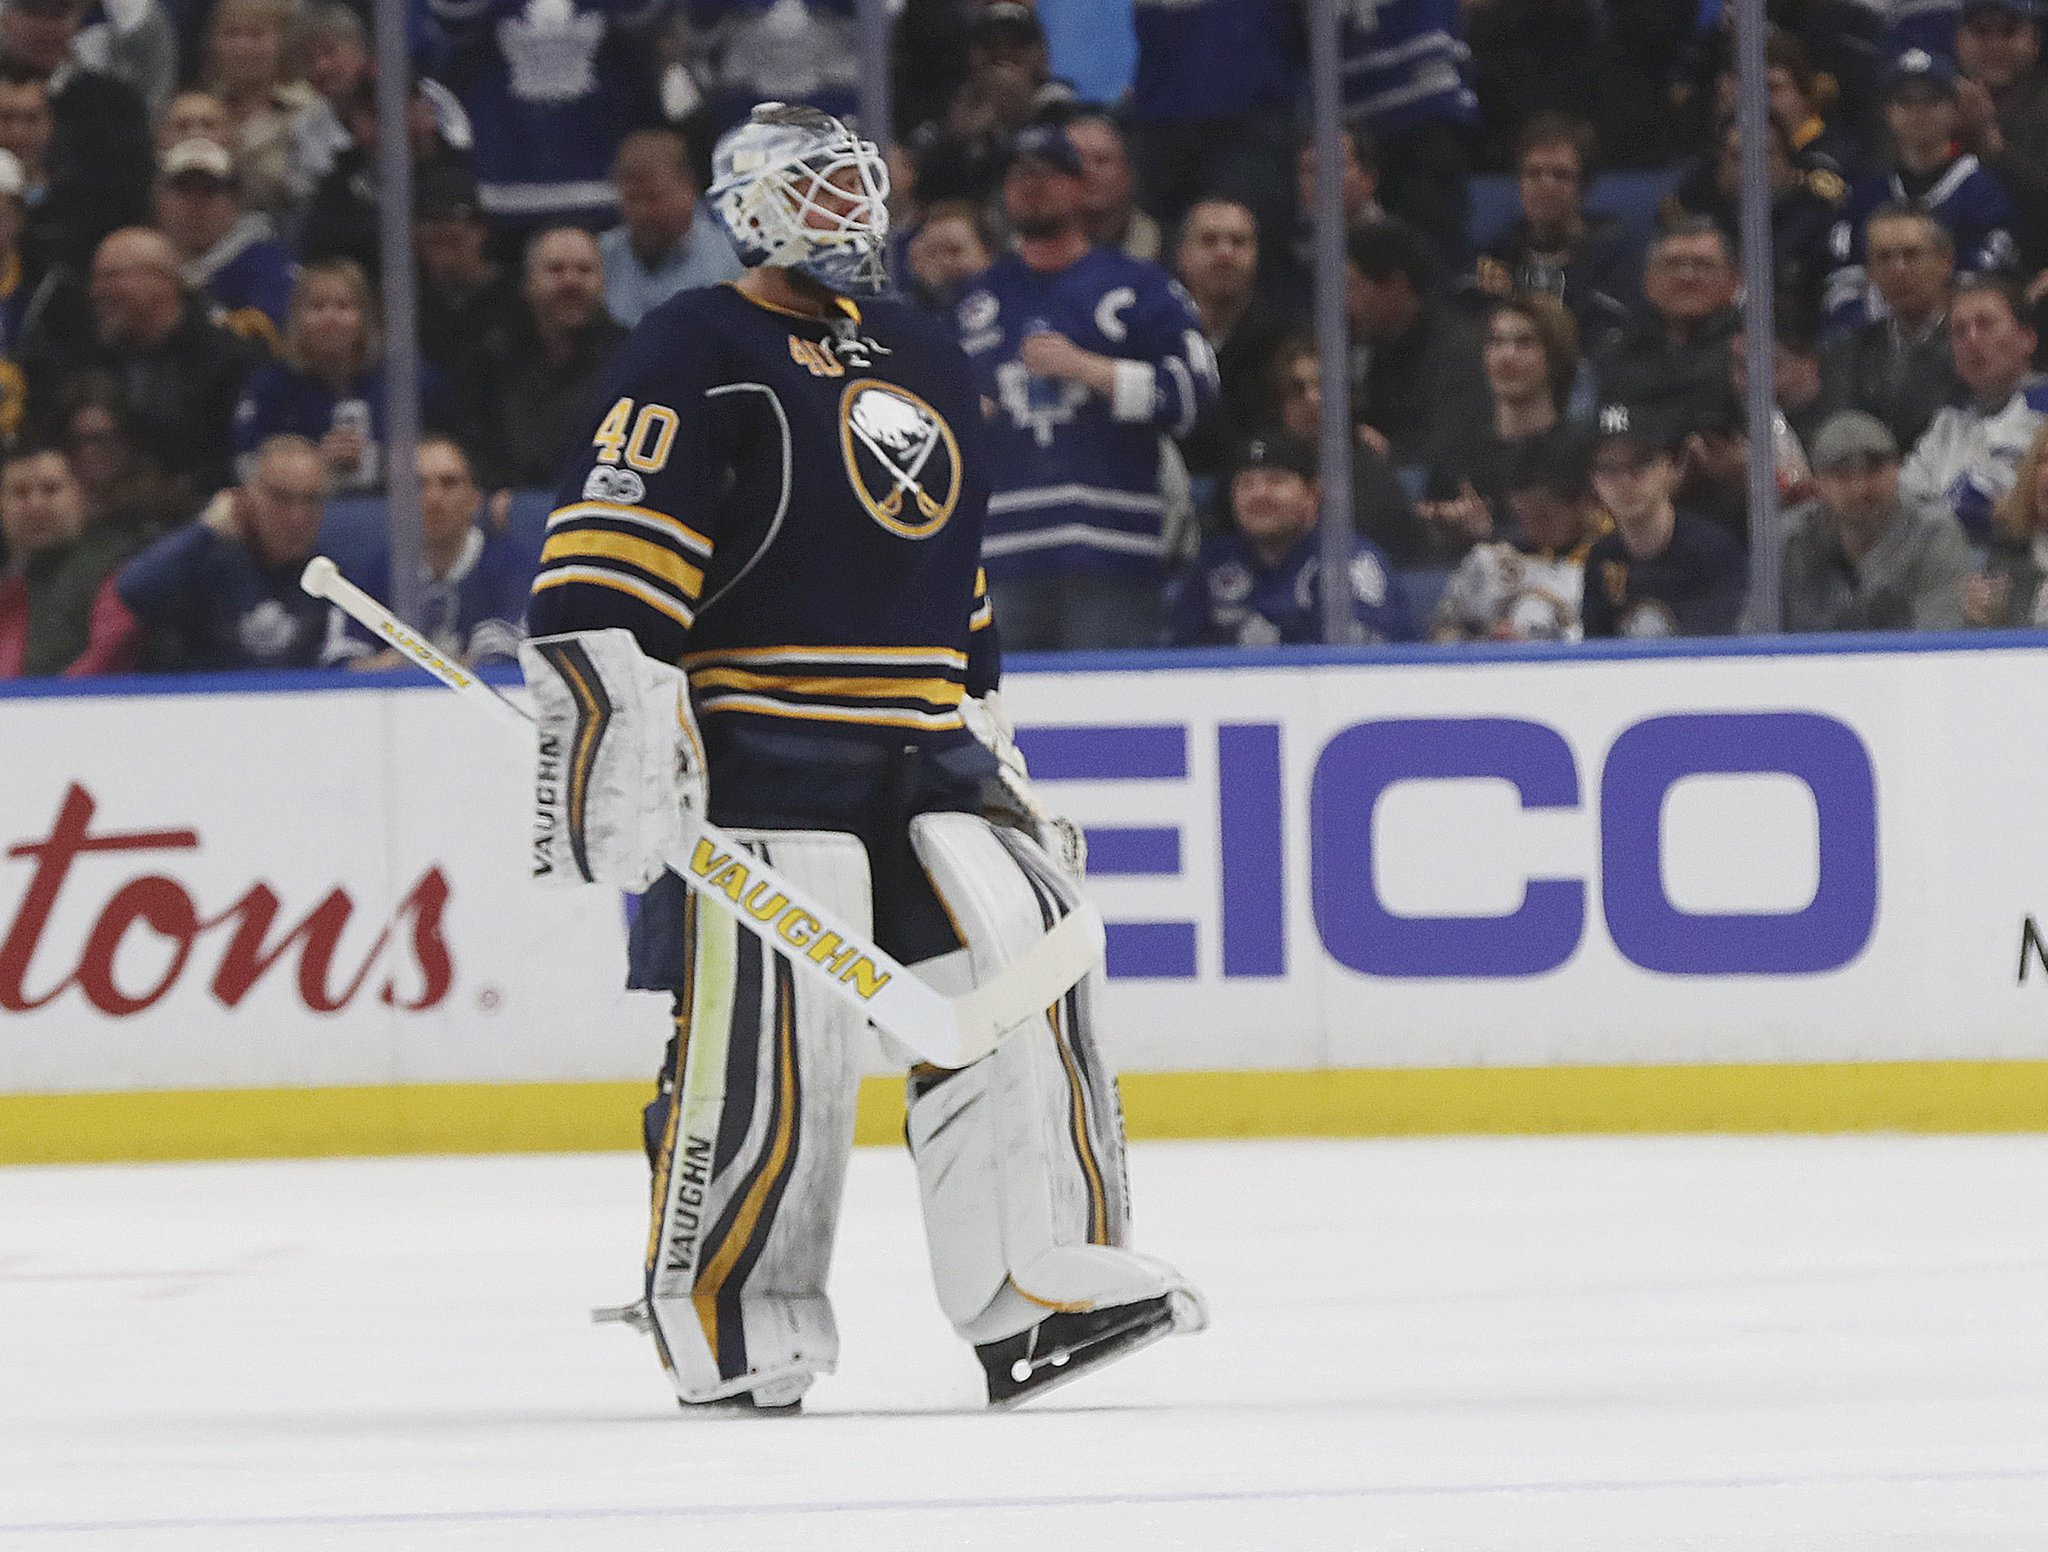 Sabres goaltender Robin Lehner heads toward the locker room after getting pulled 5:09 into the game. (James P. McCoy/Buffalo News)